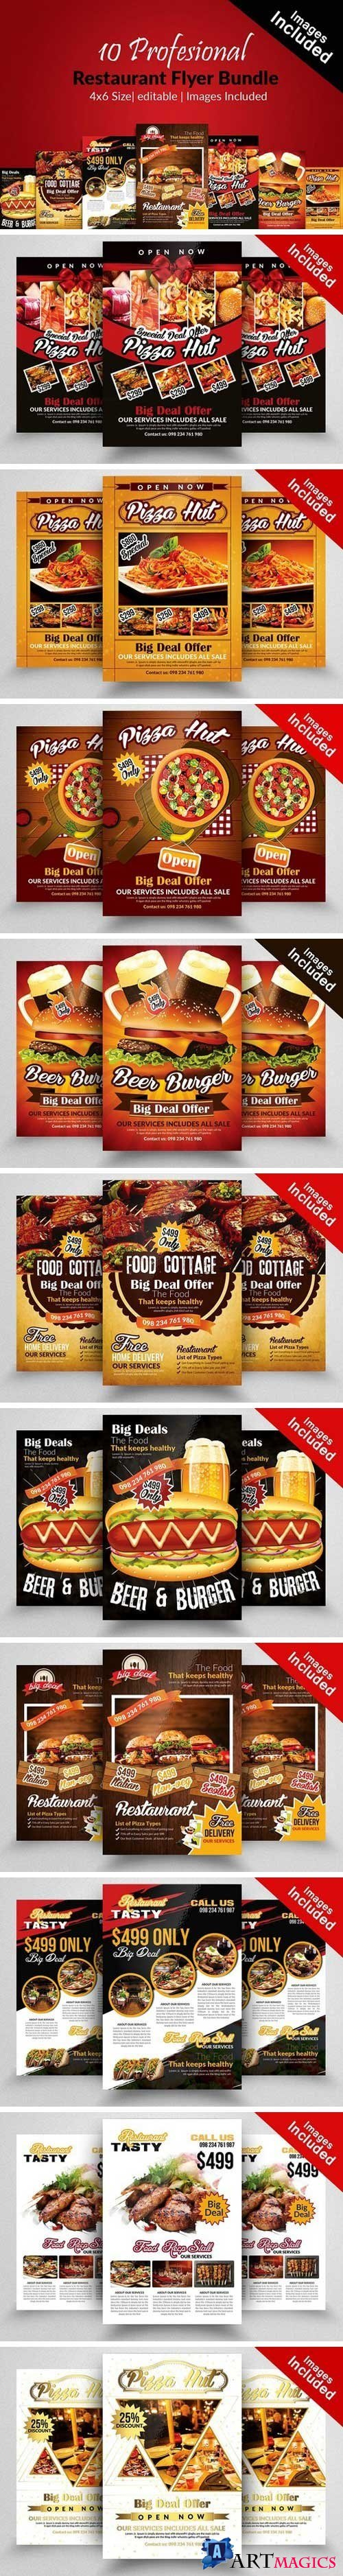 10 Restaurant Flyer Templates Bundle - 2104260